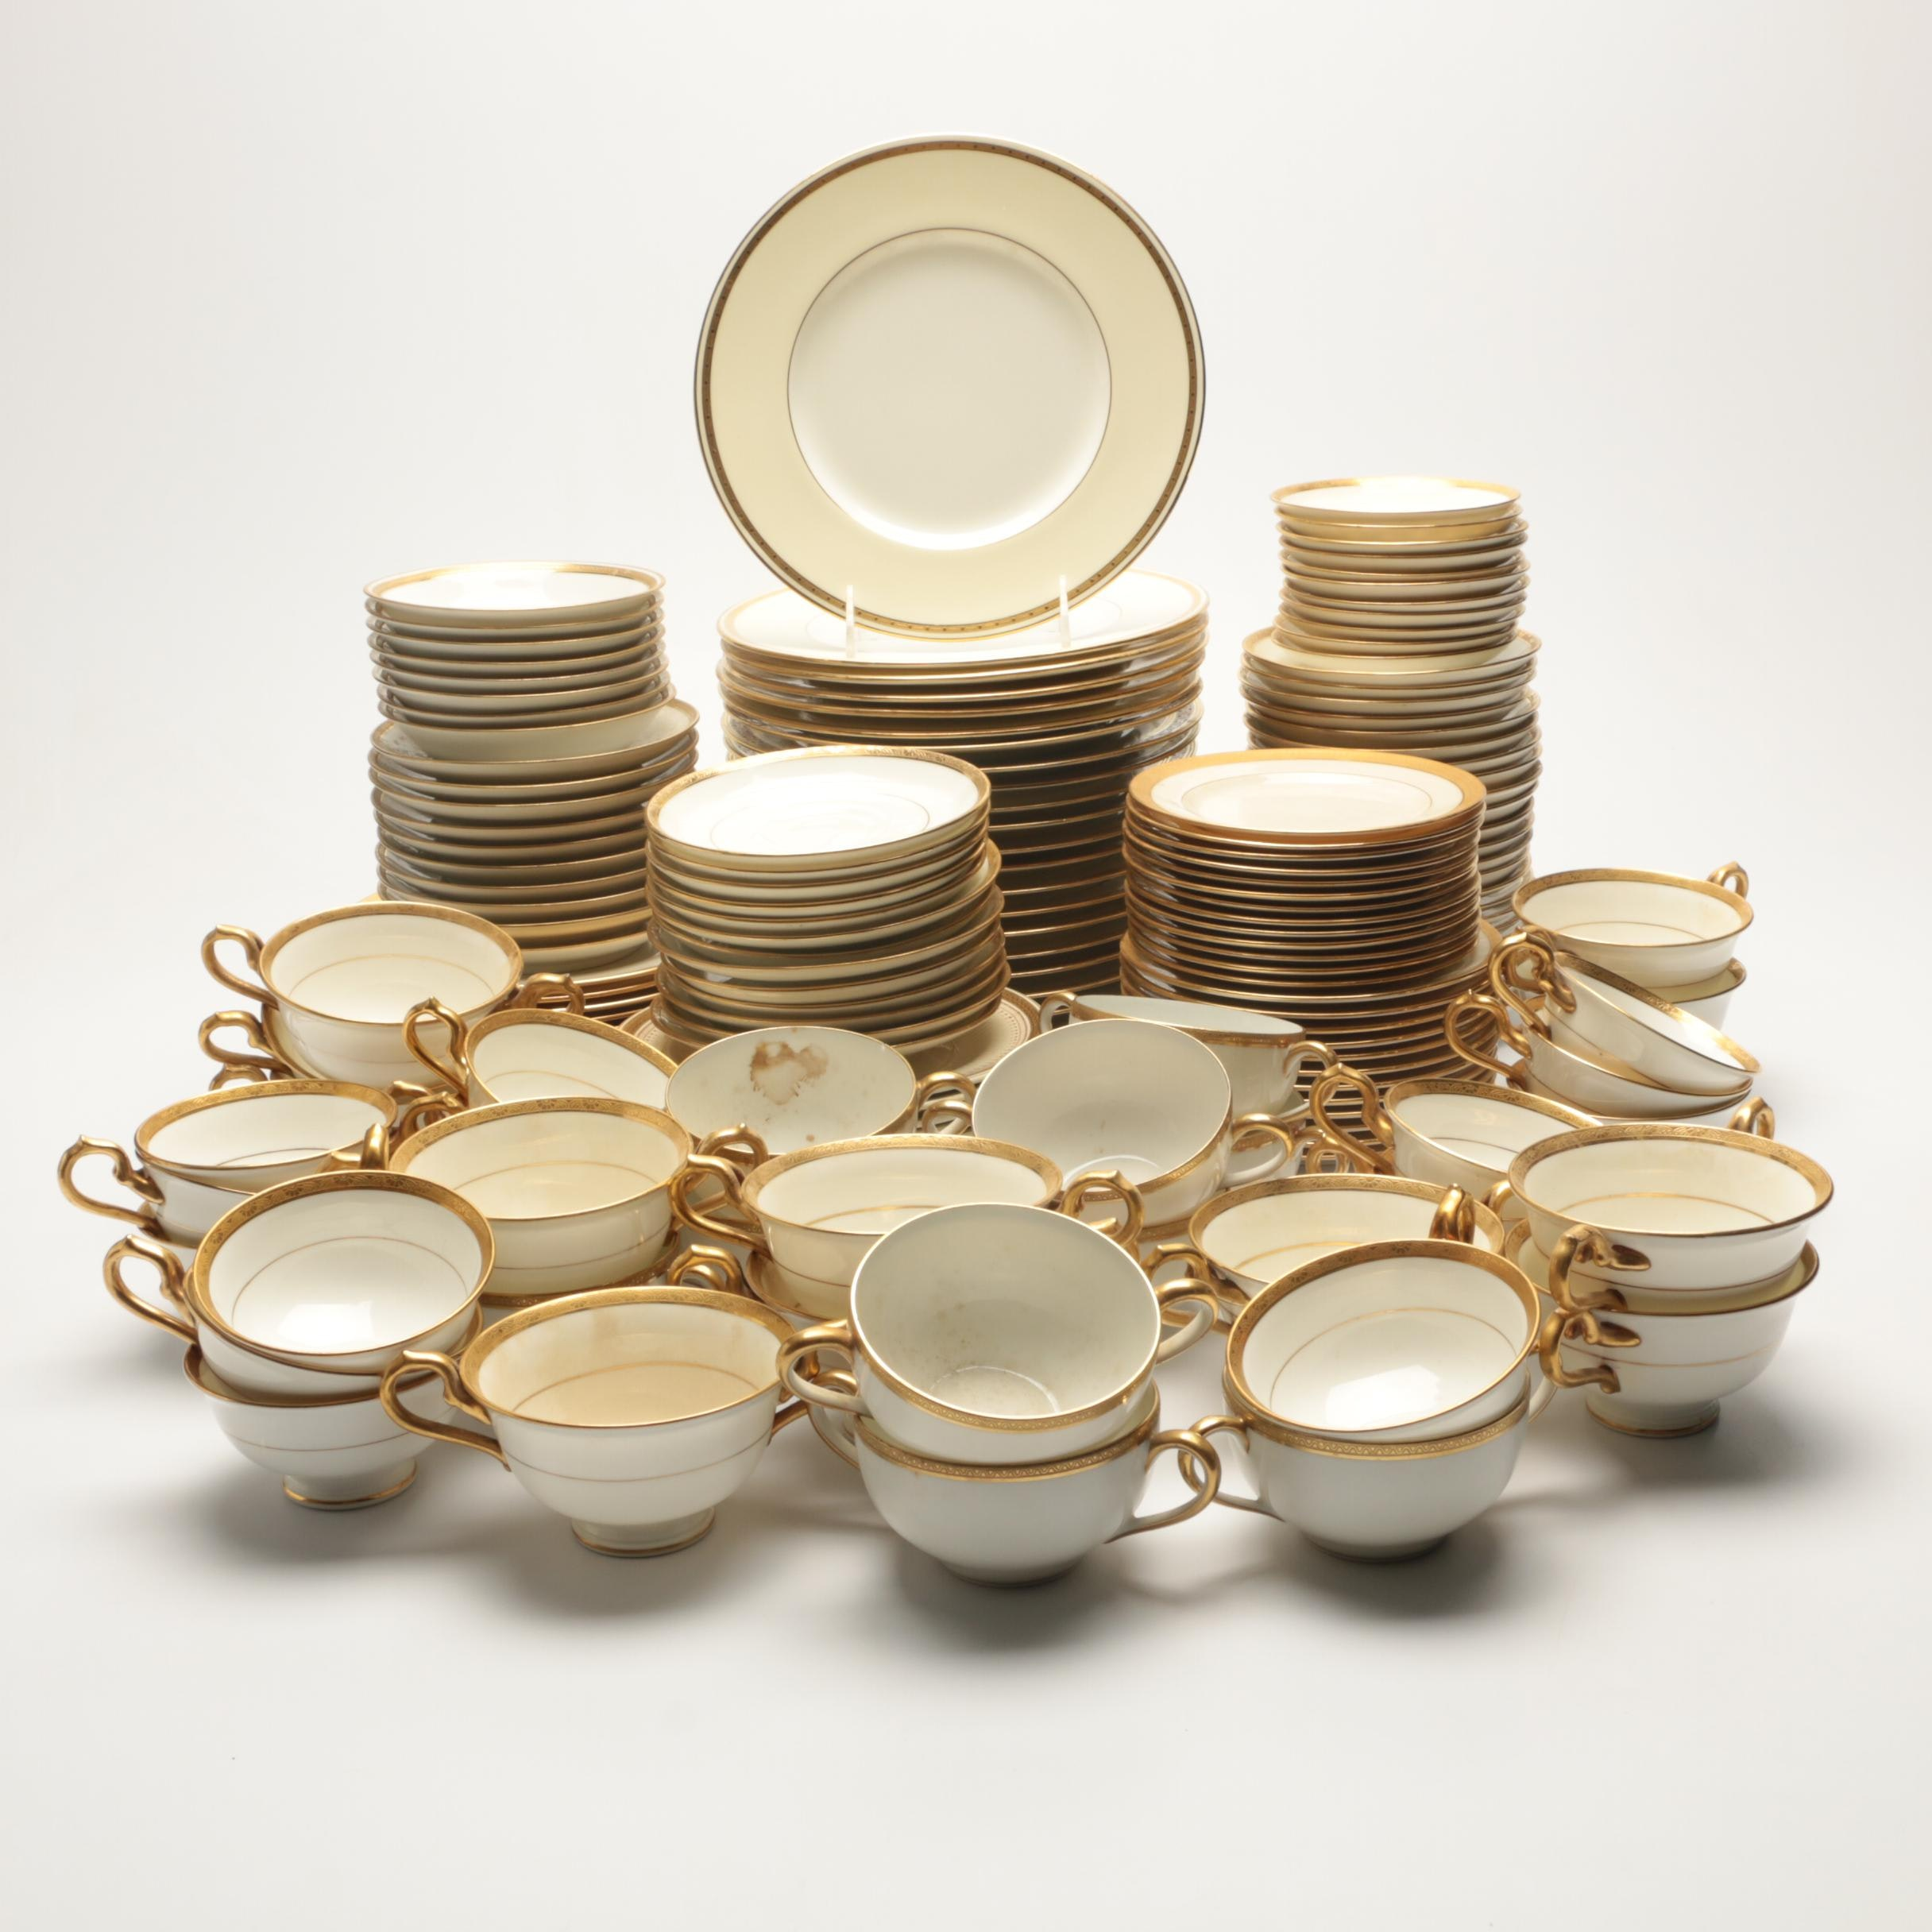 Mixed Gold and White Dinnerware Including Haviland, T&V Limoges, Minton and More